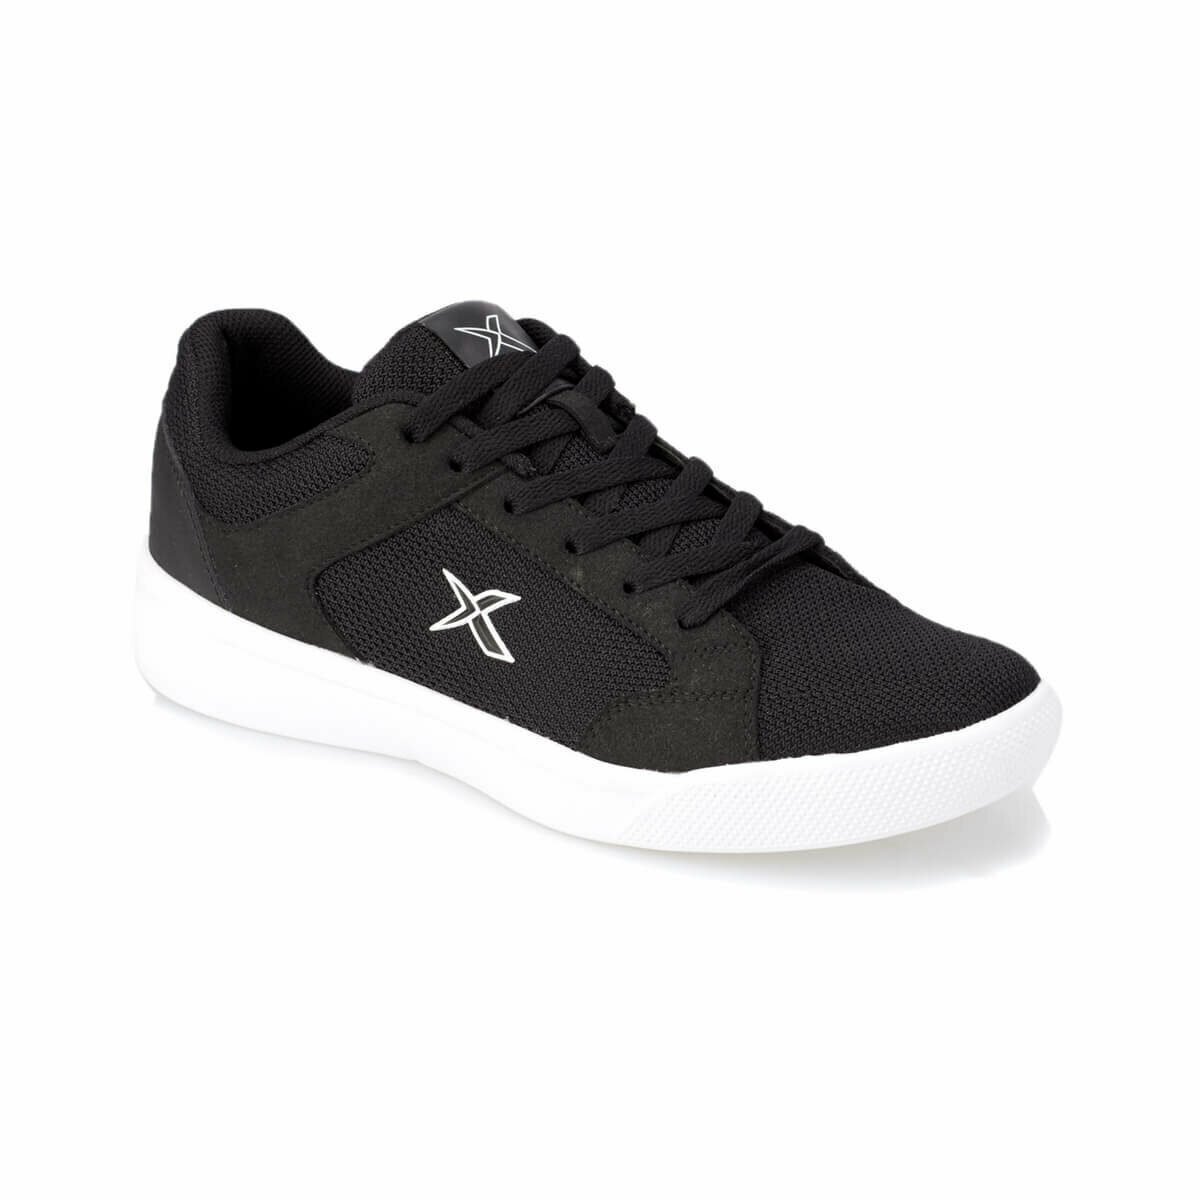 FLO ANSWER M Black Men 'S Sneaker Shoes KINETIX